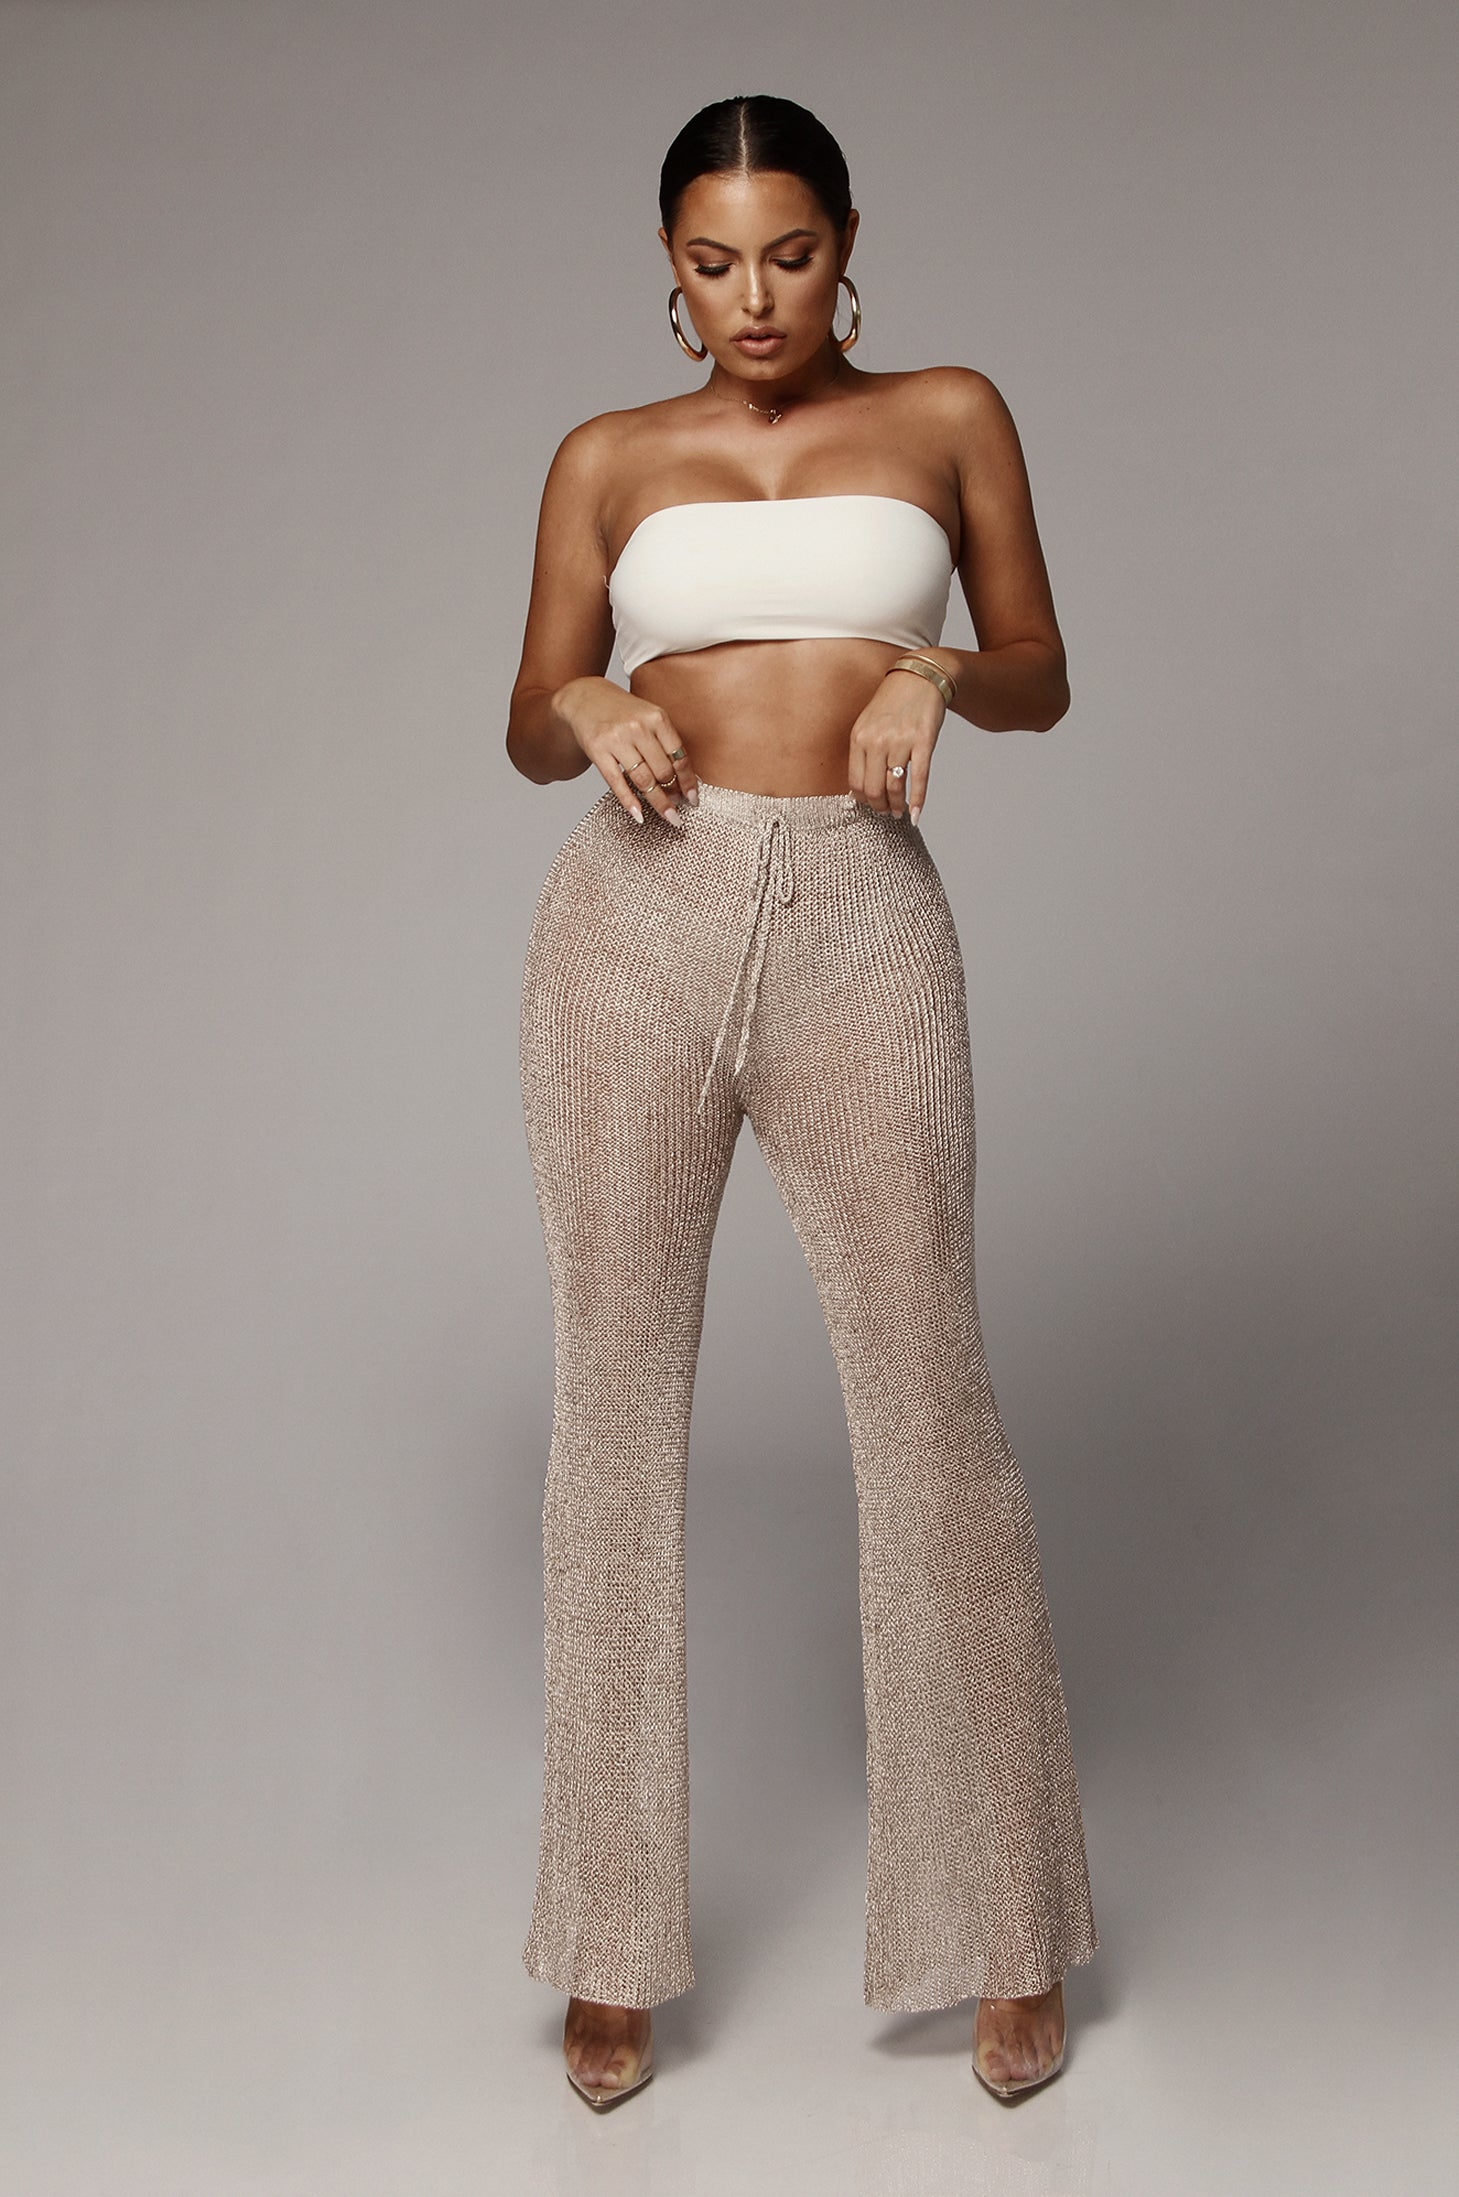 Sparkling Rose Metallic Knit Pants